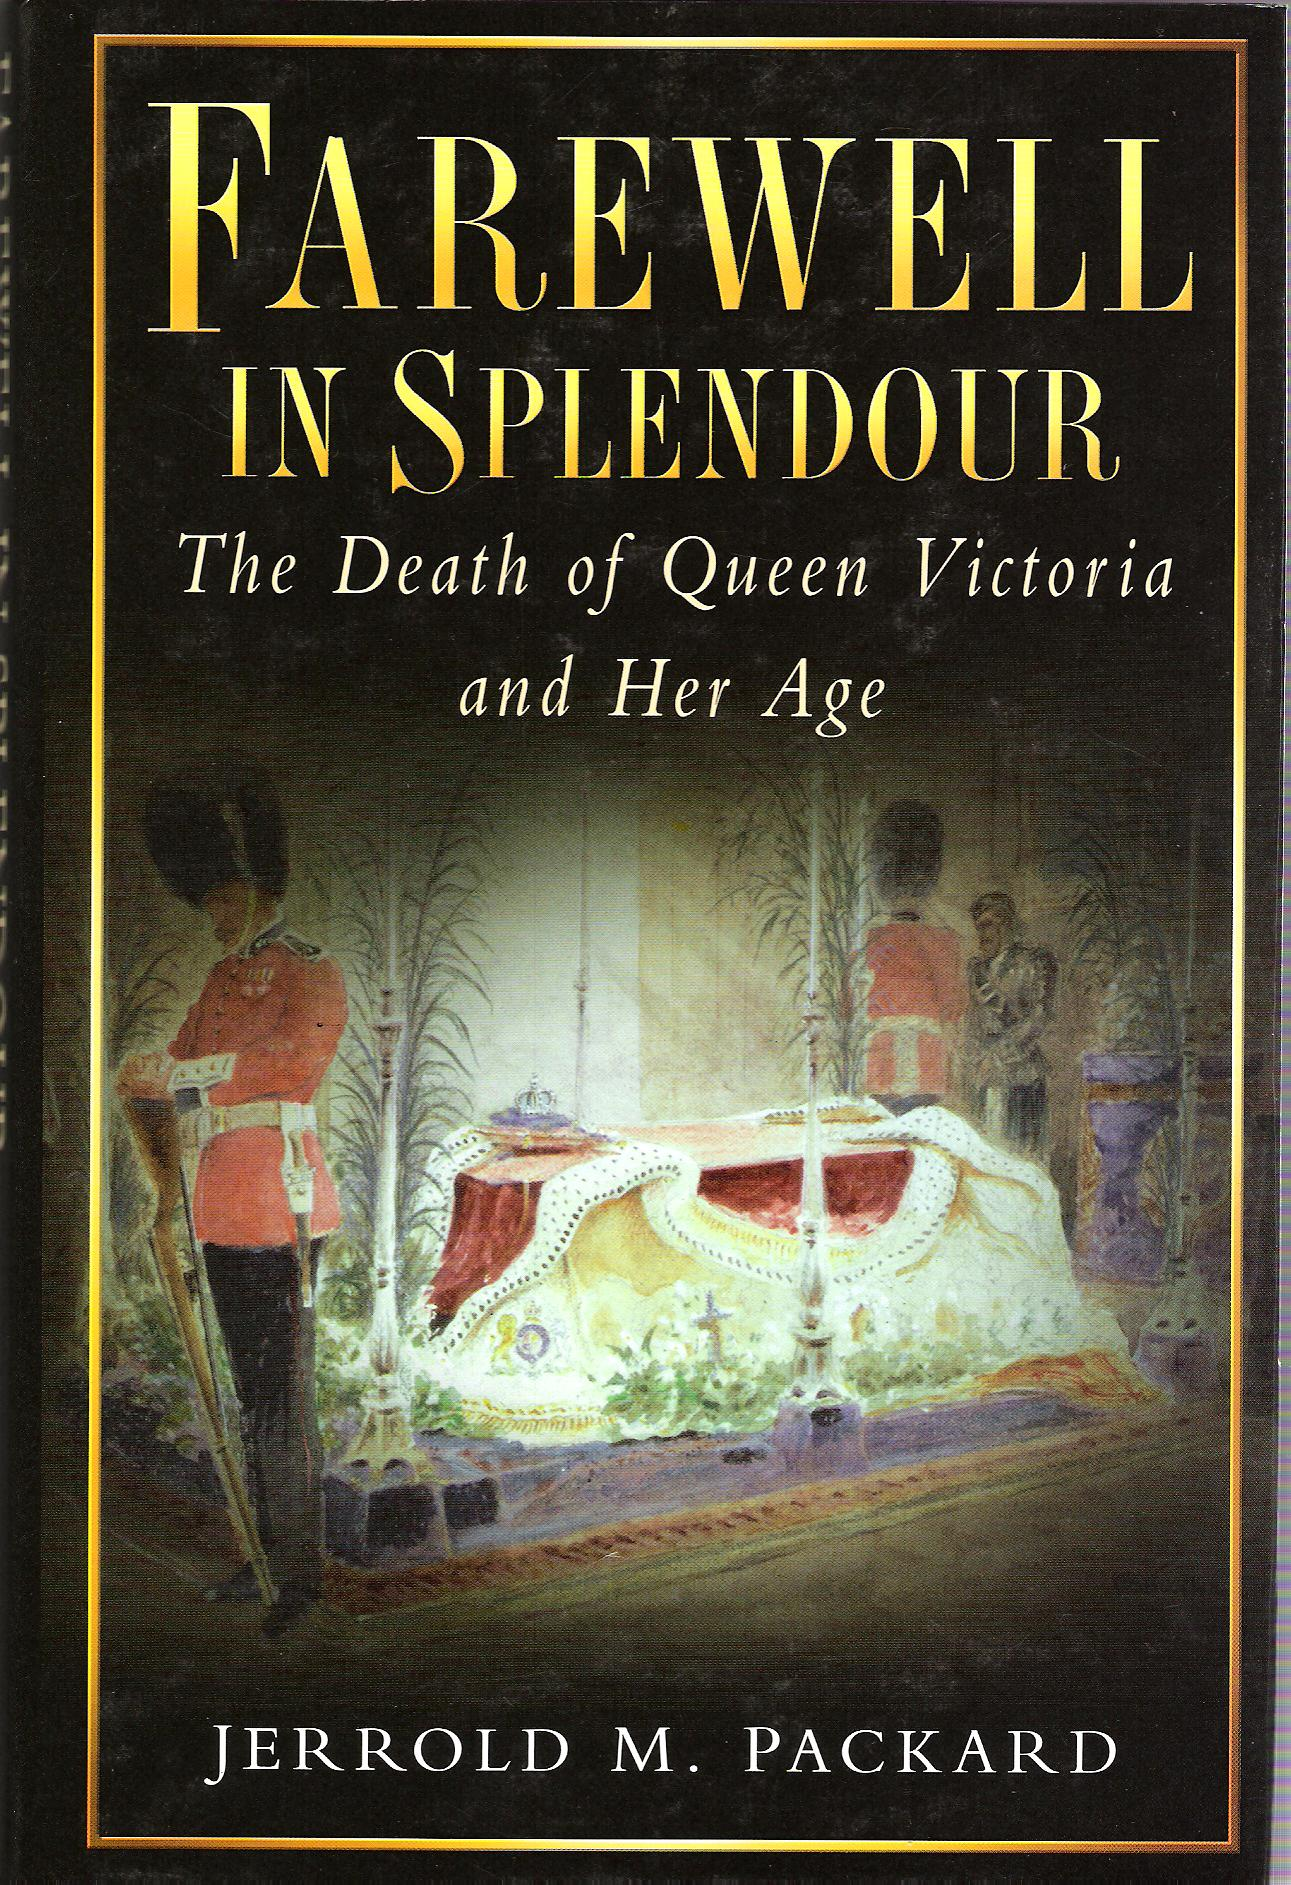 Image for Farewell in Splendour: The Death of Queen Victoria and Her Age.